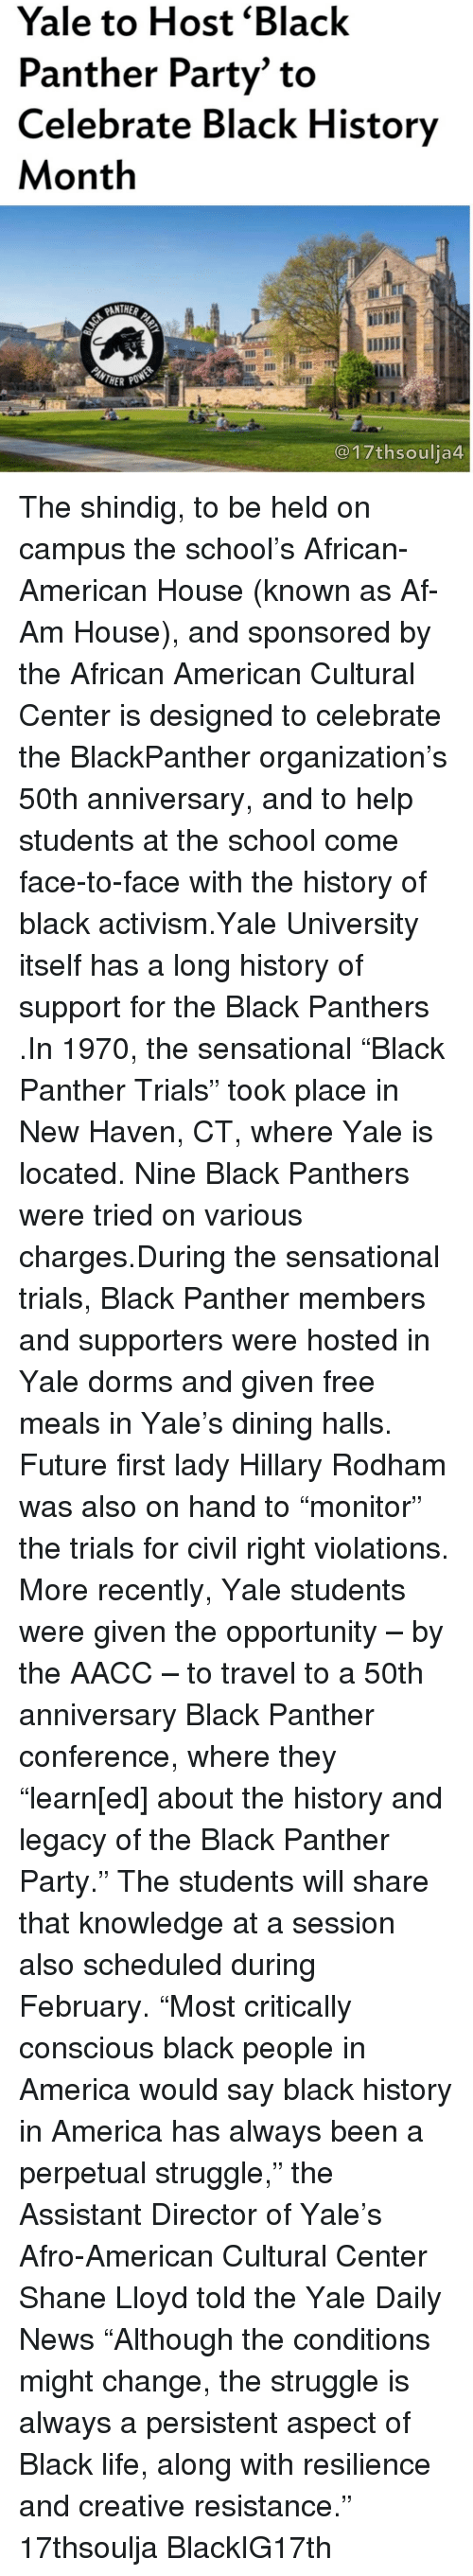 "Memes, Sensational, and Yale University: Yale to Host Black  Panther Party"" to  Celebrate Black History  Month  PANTHER  MOTHER PO  @17thsoulja The shindig, to be held on campus the school's African-American House (known as Af-Am House), and sponsored by the African American Cultural Center is designed to celebrate the BlackPanther organization's 50th anniversary, and to help students at the school come face-to-face with the history of black activism.Yale University itself has a long history of support for the Black Panthers .In 1970, the sensational ""Black Panther Trials"" took place in New Haven, CT, where Yale is located. Nine Black Panthers were tried on various charges.During the sensational trials, Black Panther members and supporters were hosted in Yale dorms and given free meals in Yale's dining halls. Future first lady Hillary Rodham was also on hand to ""monitor"" the trials for civil right violations. More recently, Yale students were given the opportunity – by the AACC – to travel to a 50th anniversary Black Panther conference, where they ""learn[ed] about the history and legacy of the Black Panther Party."" The students will share that knowledge at a session also scheduled during February. ""Most critically conscious black people in America would say black history in America has always been a perpetual struggle,"" the Assistant Director of Yale's Afro-American Cultural Center Shane Lloyd told the Yale Daily News ""Although the conditions might change, the struggle is always a persistent aspect of Black life, along with resilience and creative resistance."" 17thsoulja BlackIG17th"